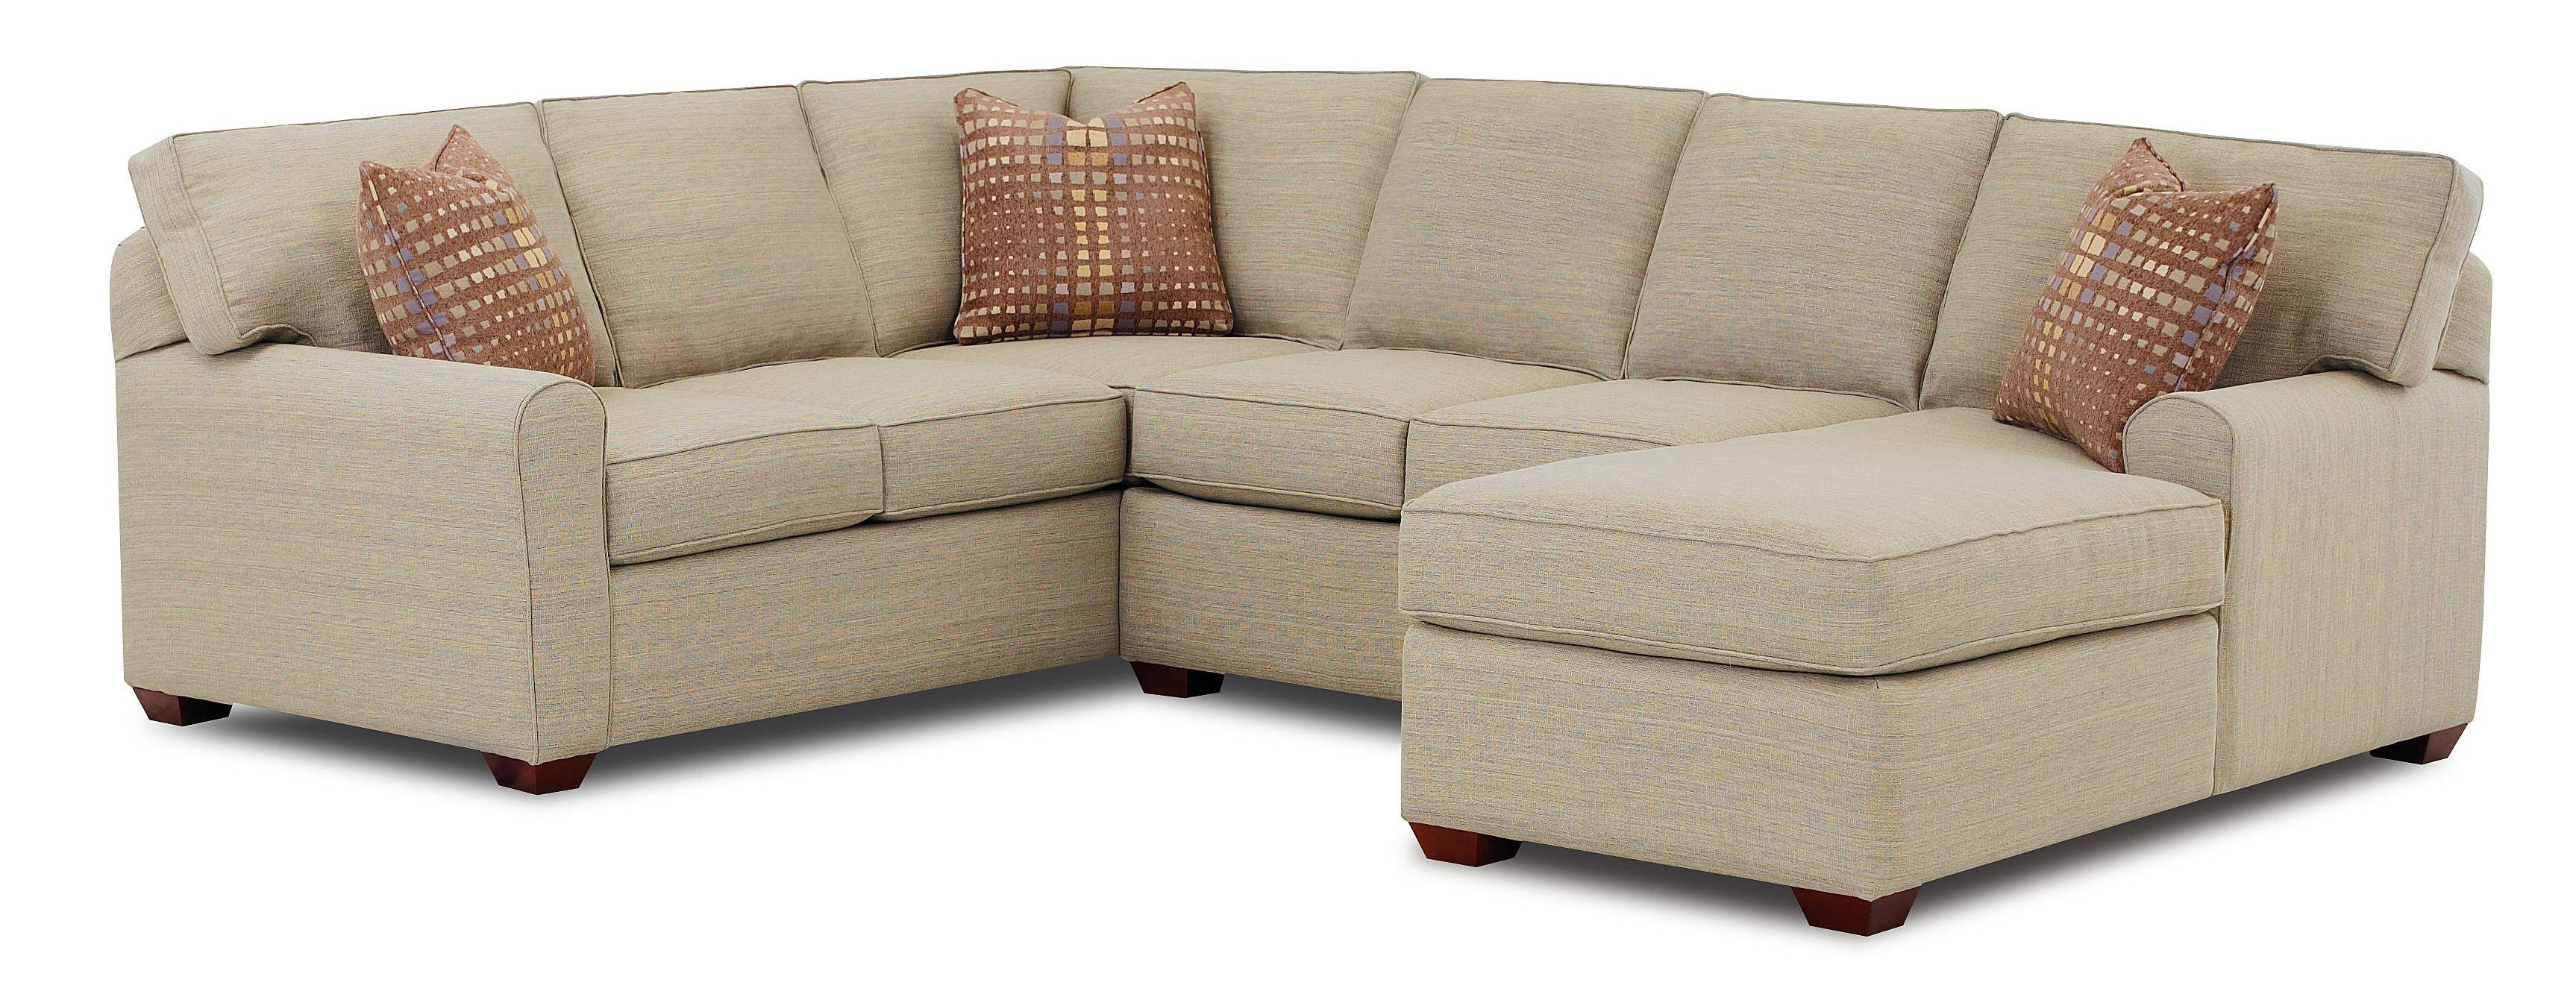 Cheap Sofa Sleepers. Fresh Single Bed Sofa Sleeper 90 For Daybed for Cool Cheap Sofas (Image 6 of 30)